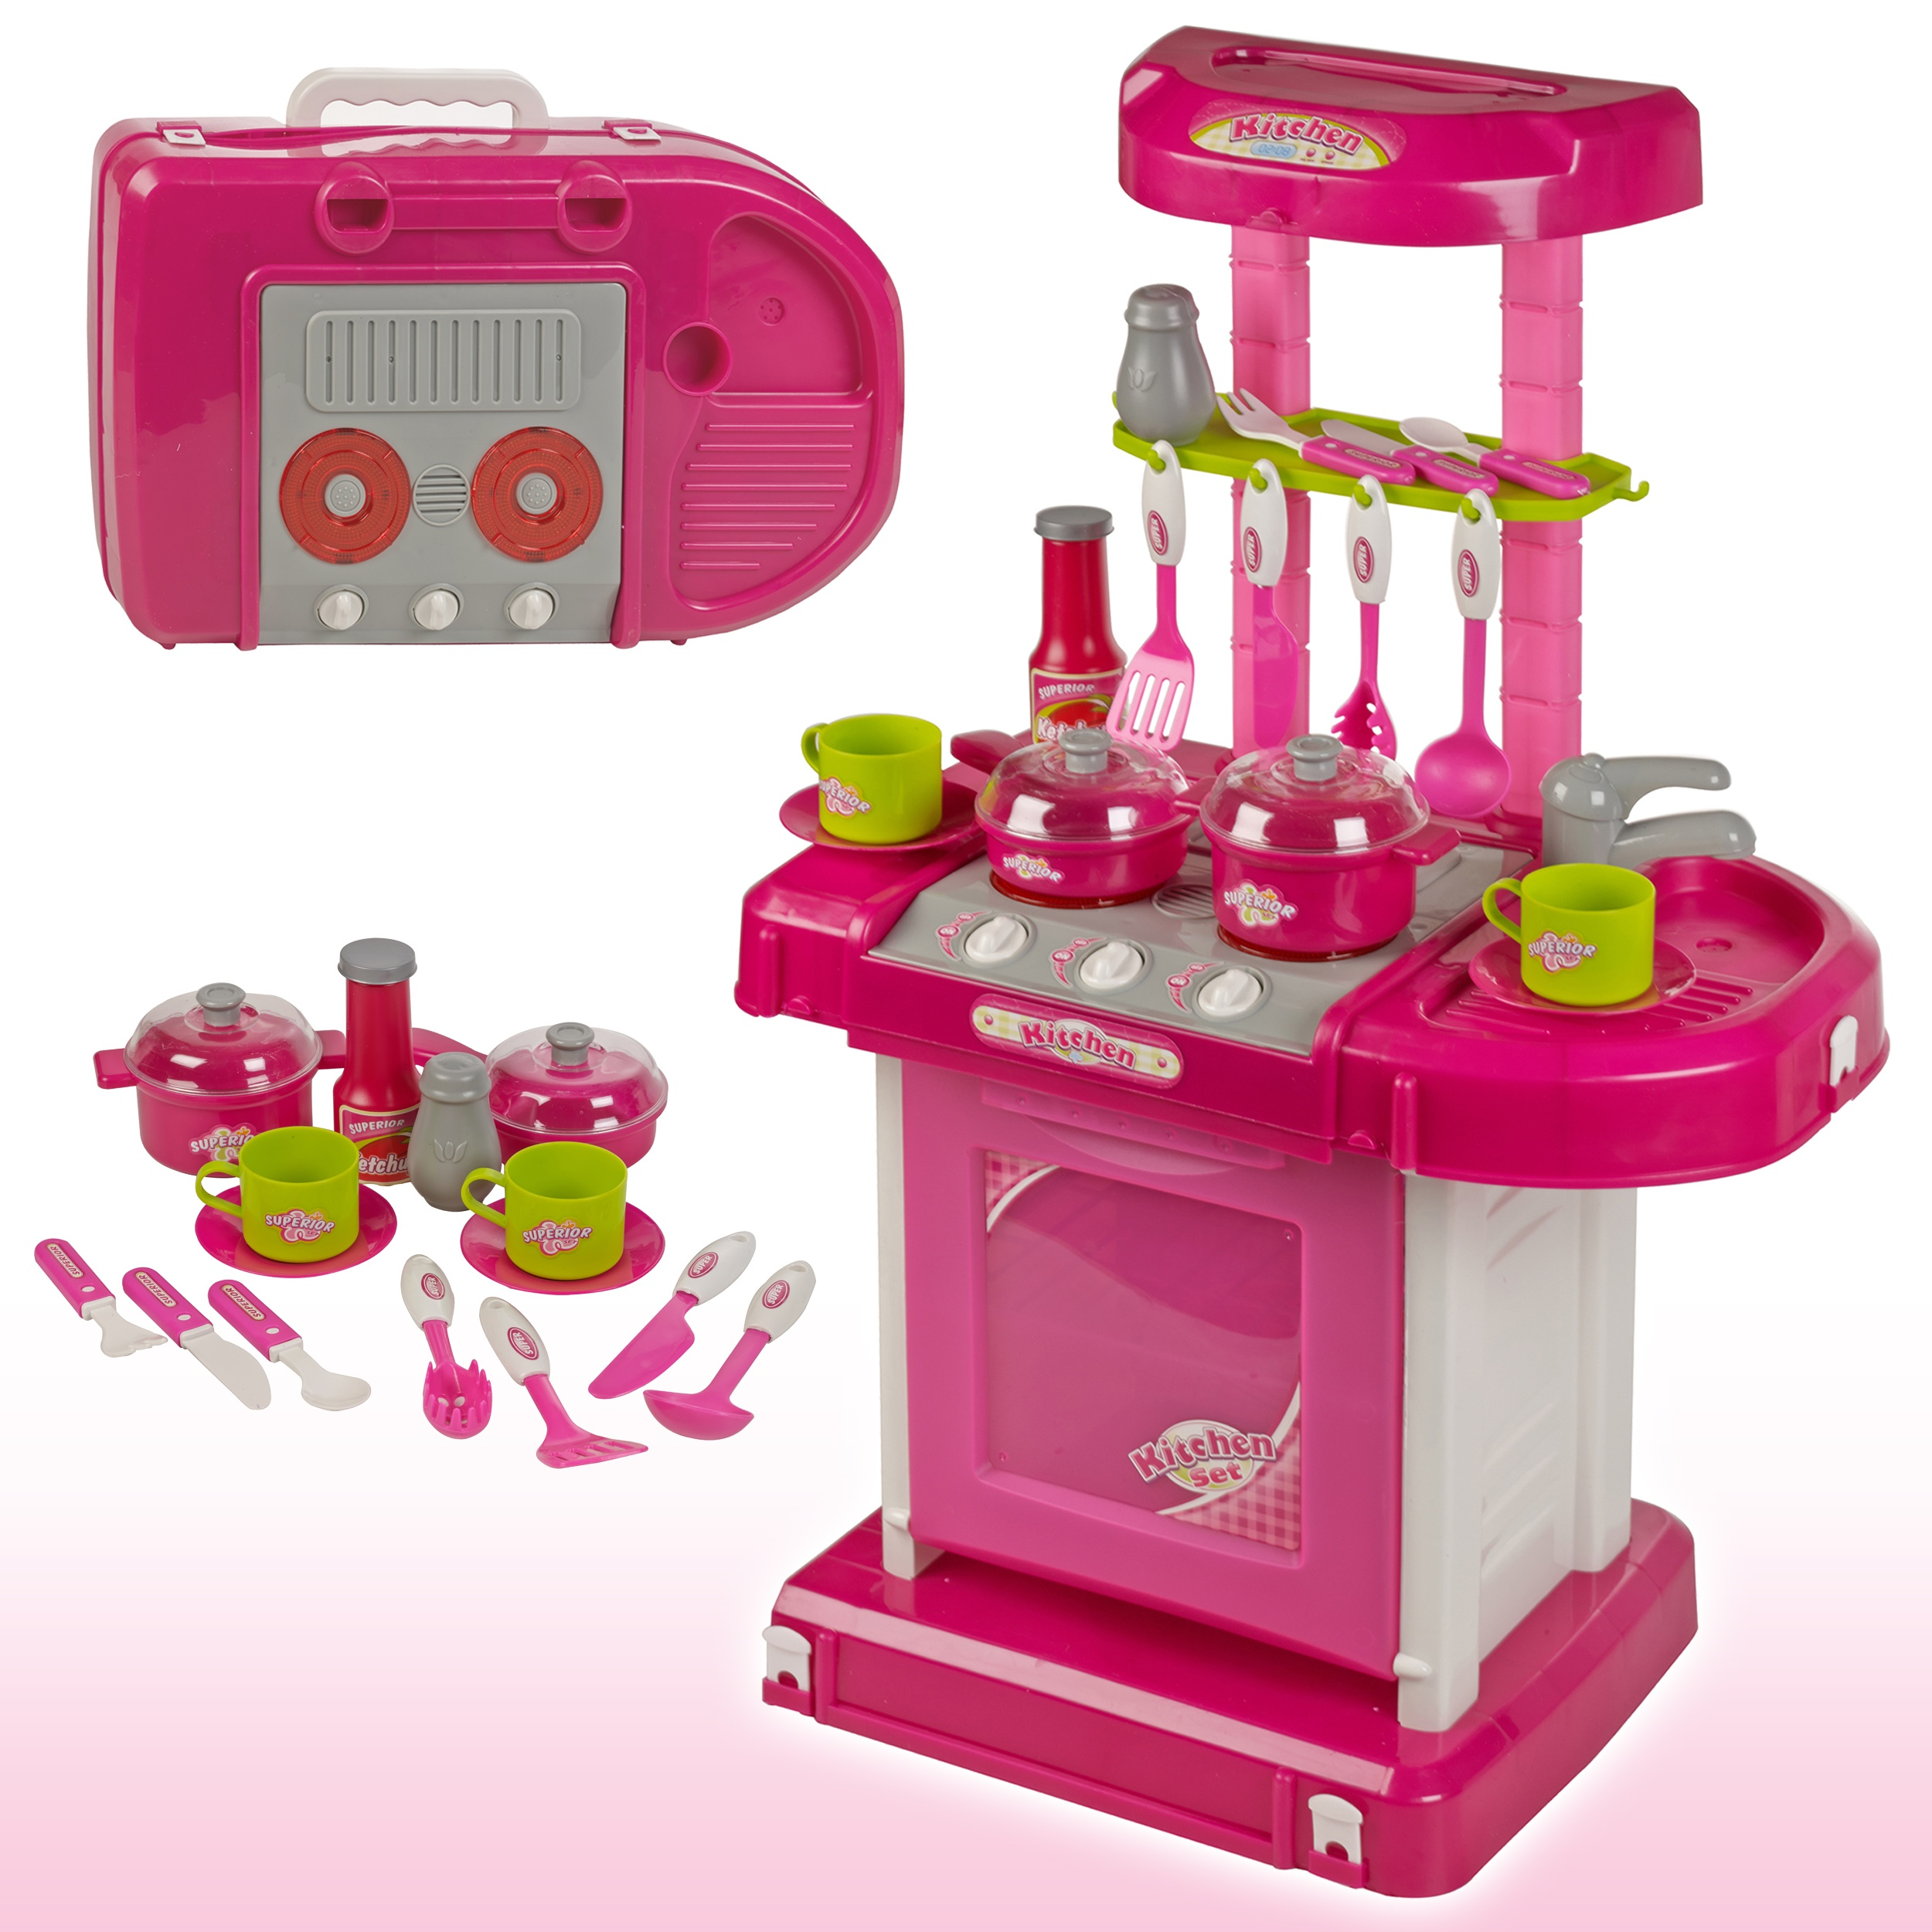 Girls Portable Electronic Kitchen Cooking Children's Play